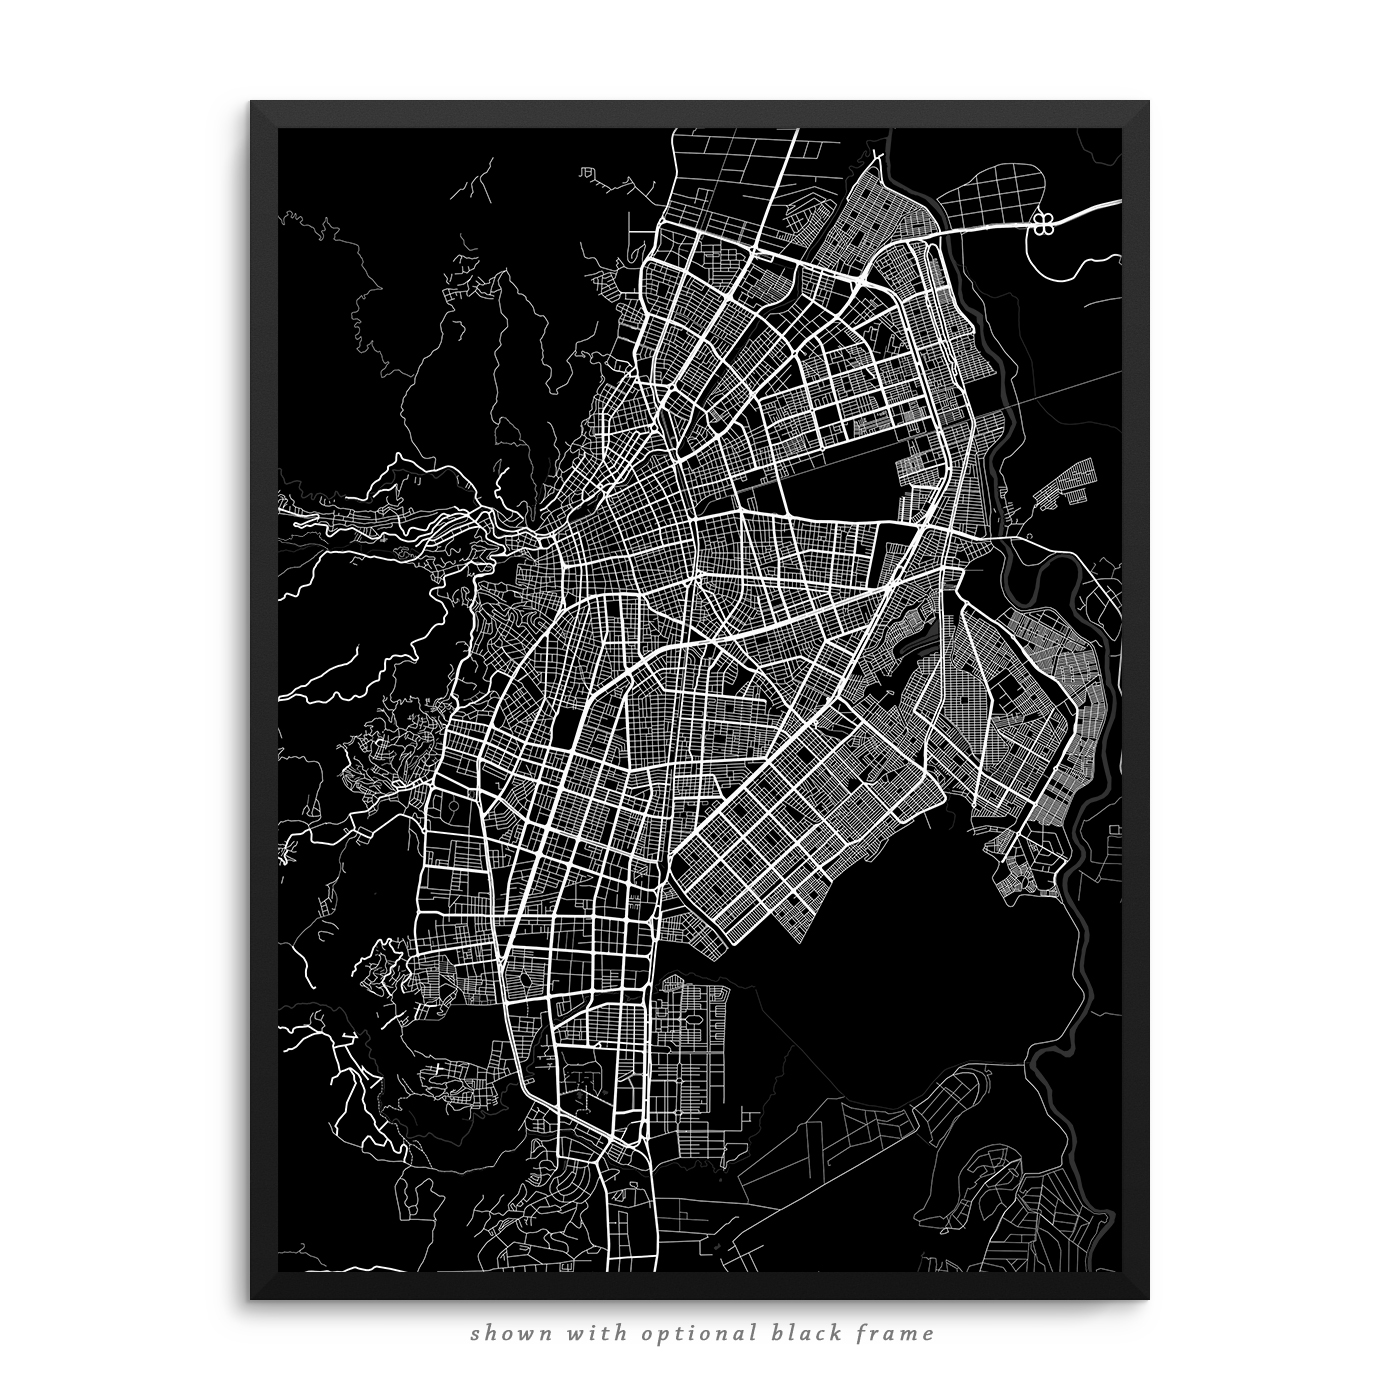 Cali colombia poster city map decor cali colombia city street map black poster gumiabroncs Choice Image